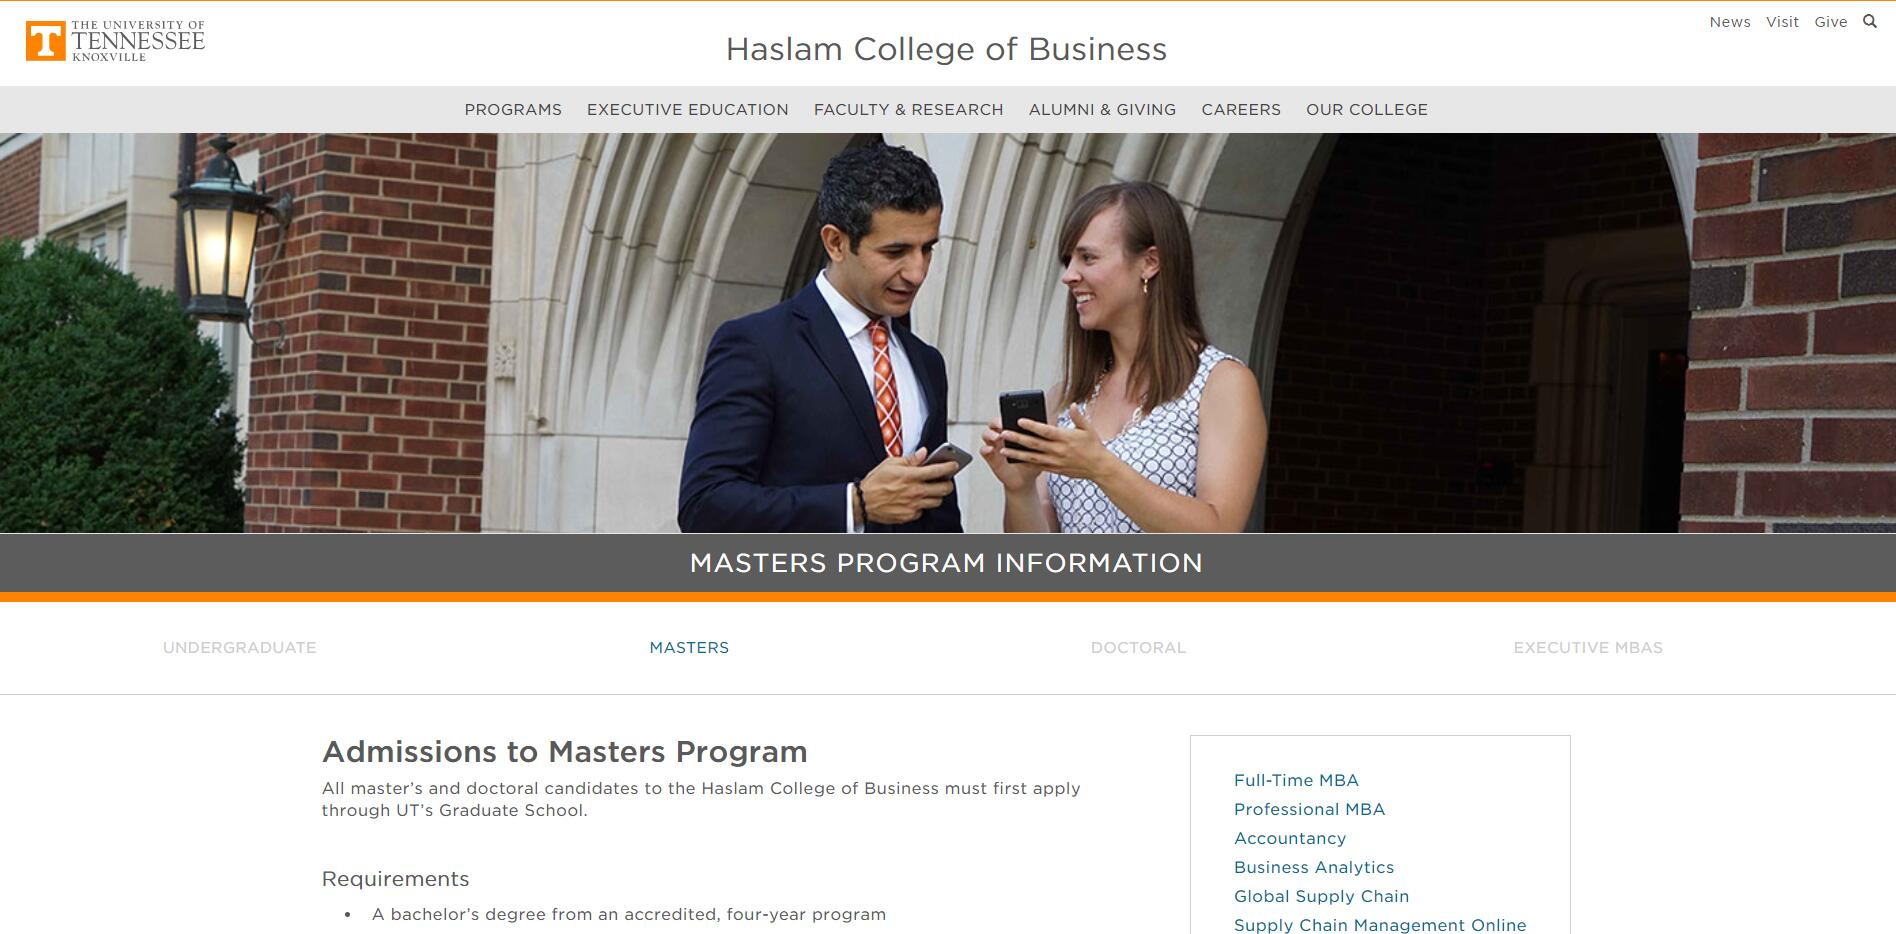 The Graduate School of Business at University of Tennessee